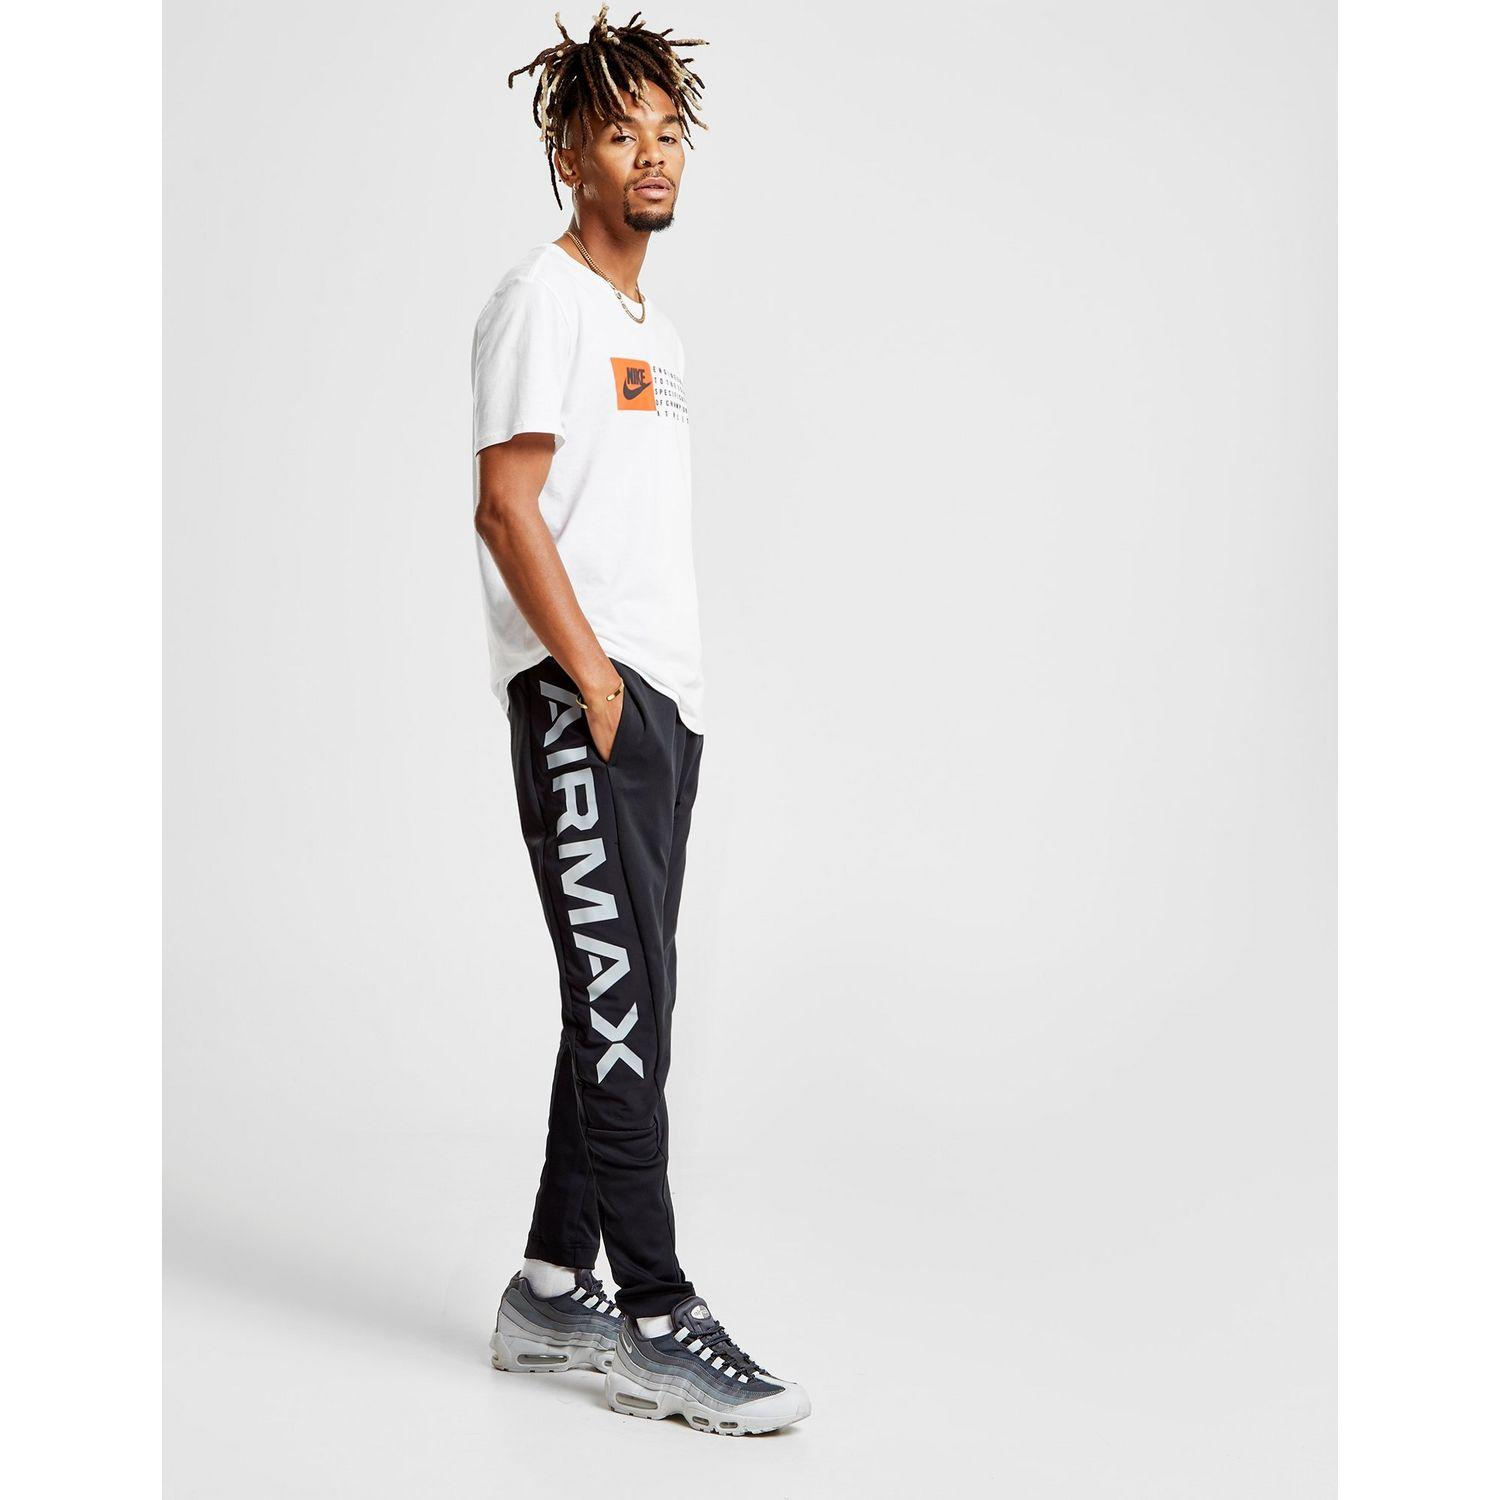 6f908a0b9152 Nike Sportswear Air Max Track Pants in Black for Men - Lyst